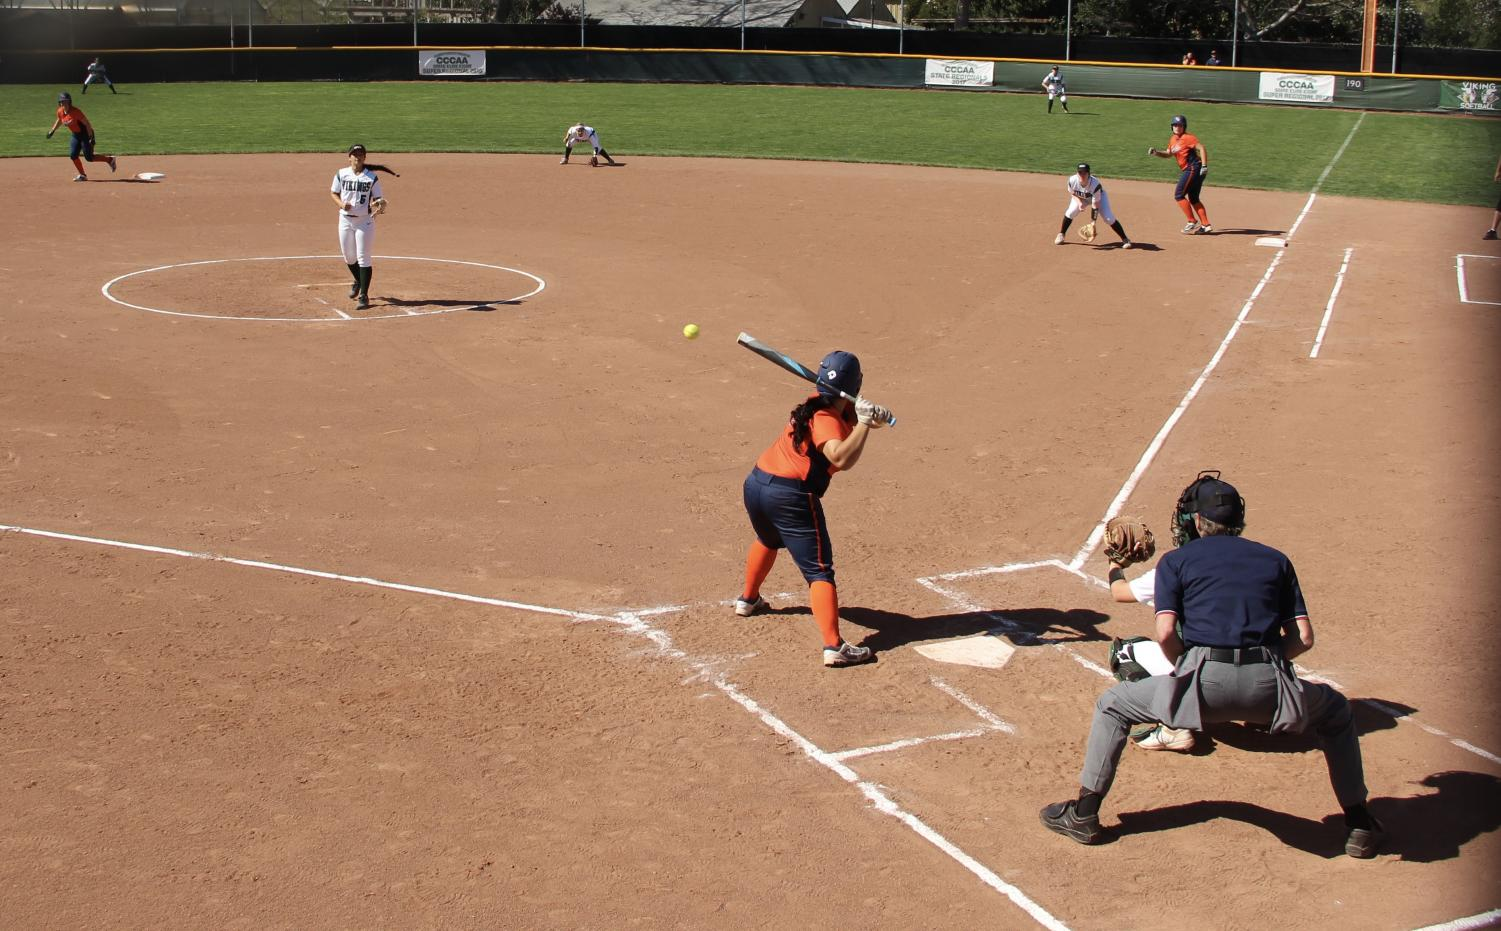 Diablo Valley College Softball team stands ready on defense against Cosumnes College on April 9, 2019. The Vikings lost 4-6. (Isabel Villalobos/ Inquirer)